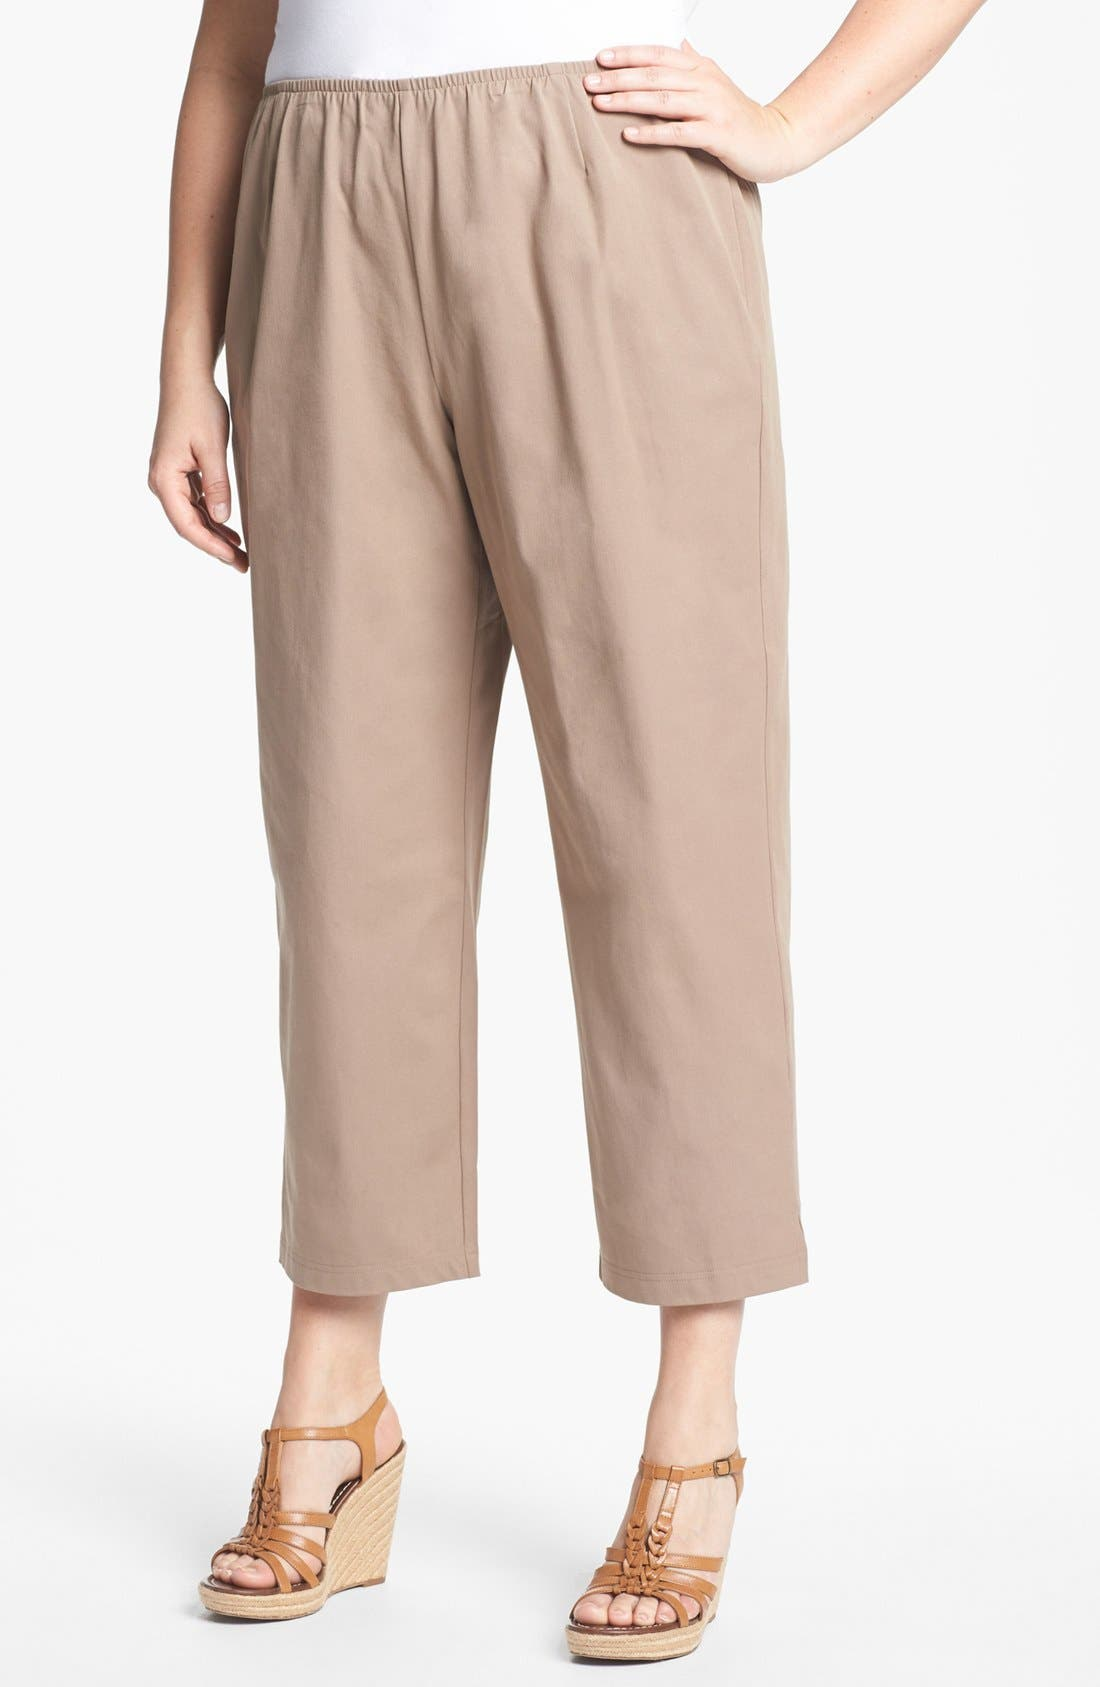 Alternate Image 1 Selected - Eileen Fisher Stretch Ankle Pants (Plus Size)